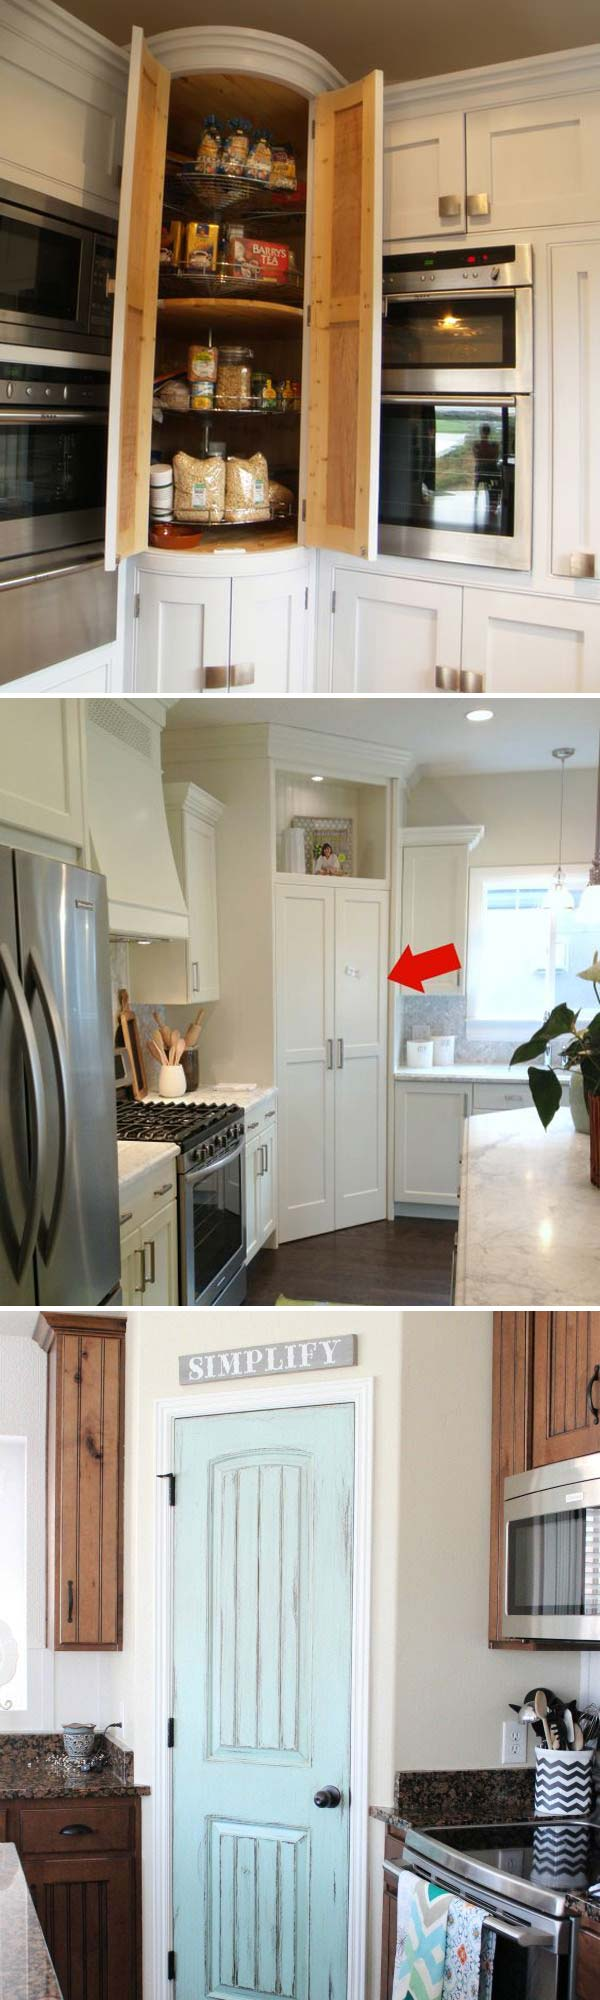 Fabulous Hacks To Utilize The Space Of Corner Kitchen Cabinets Amazing Diy Interior Home Design